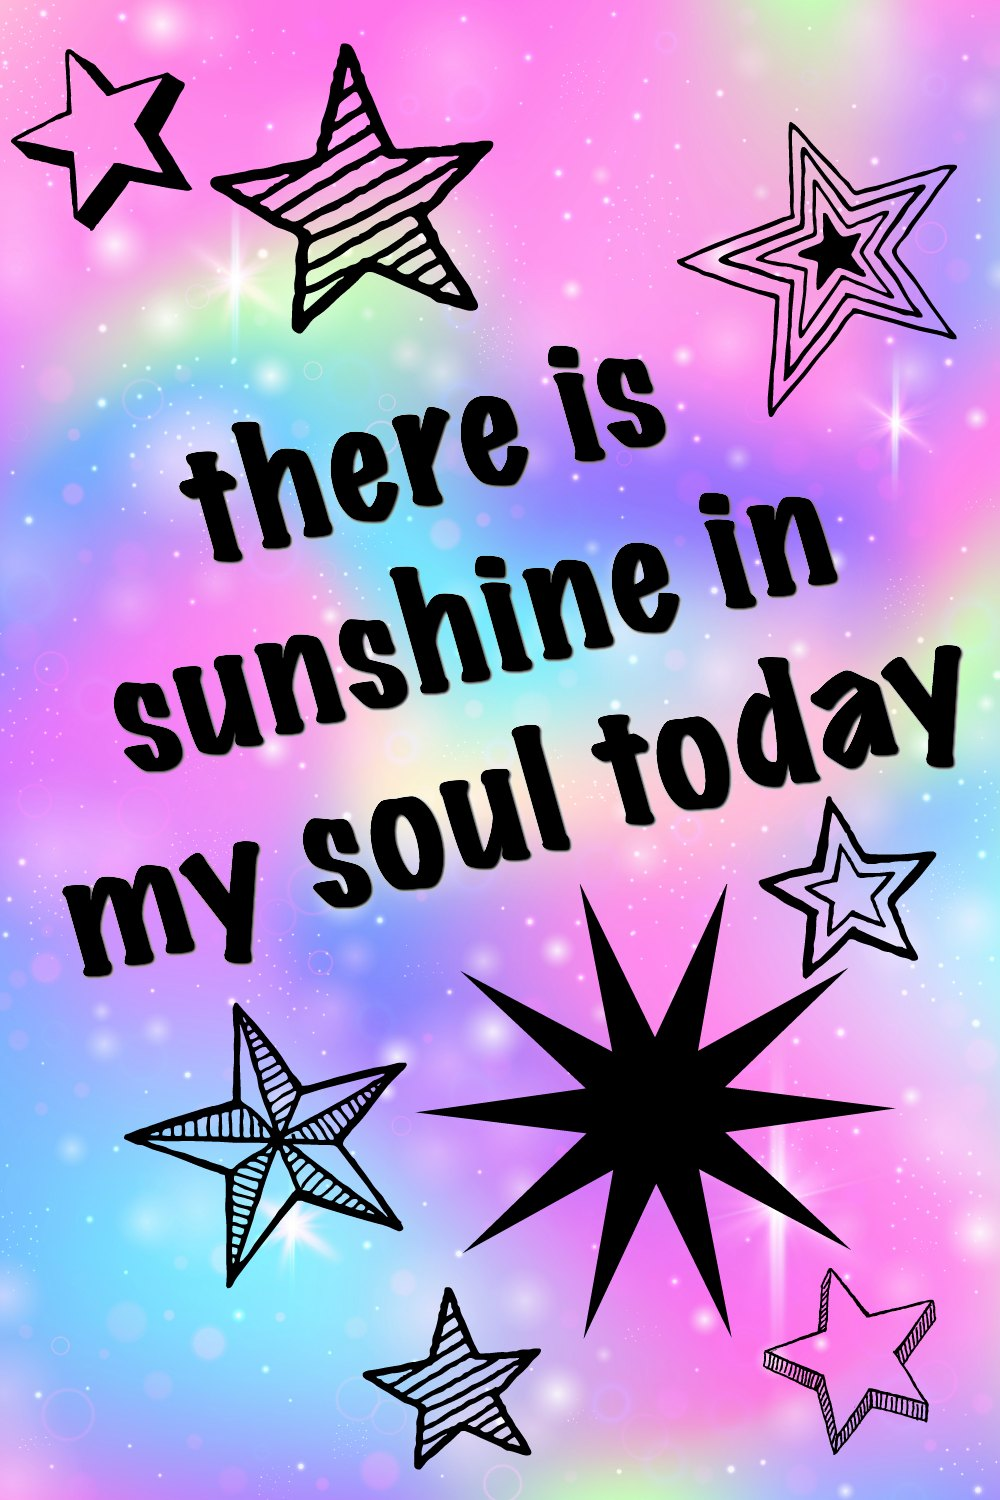 sunshine quotes about happiness and positivity